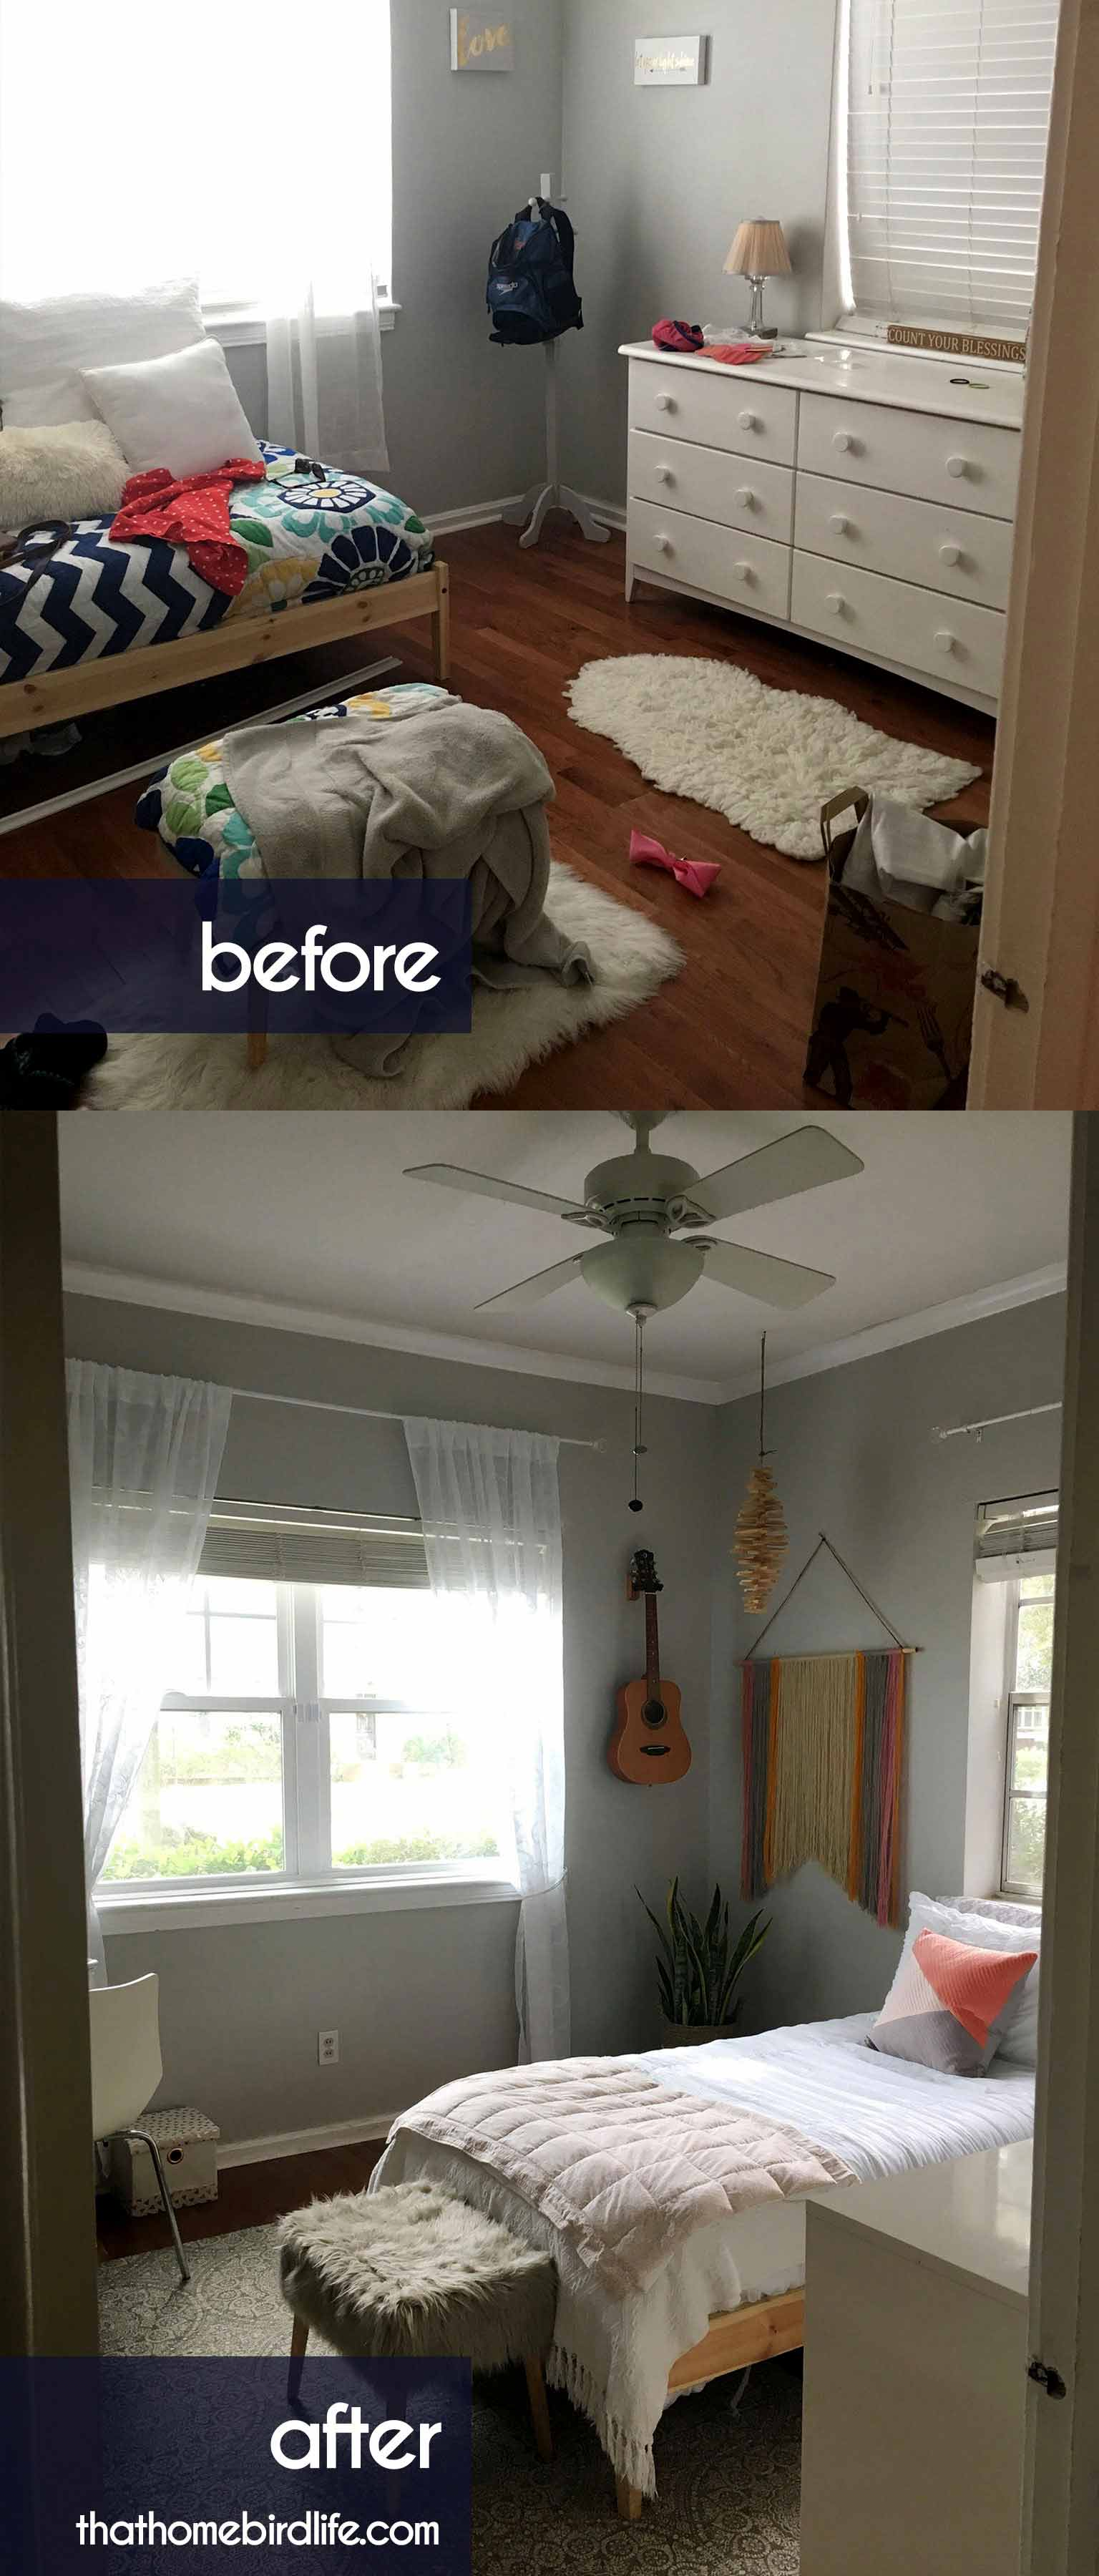 Before and after - A modern boho tween bedroom makeover on a budget - That Homebird Life Blog